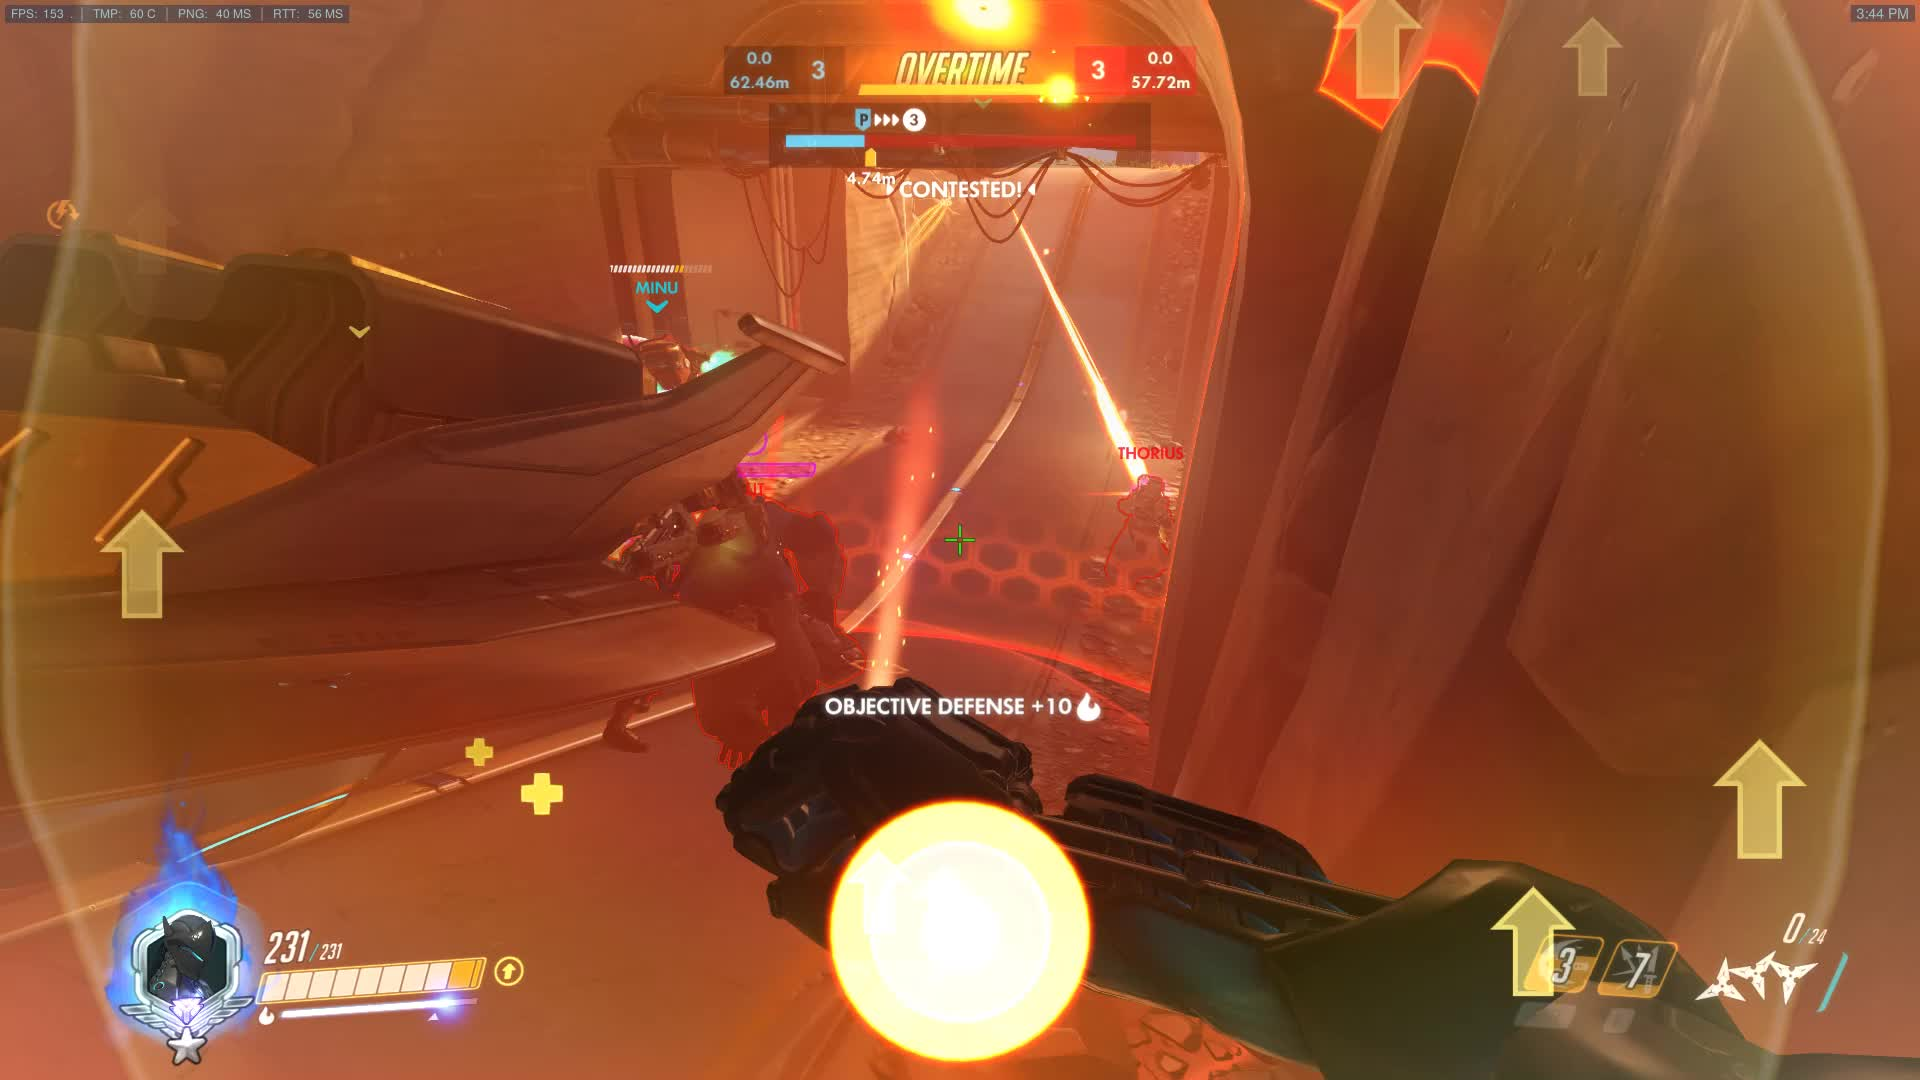 vlc-record-2017-05-03-15h47m18s-Overwatch 05.03.2017 - 15.45 GIFs